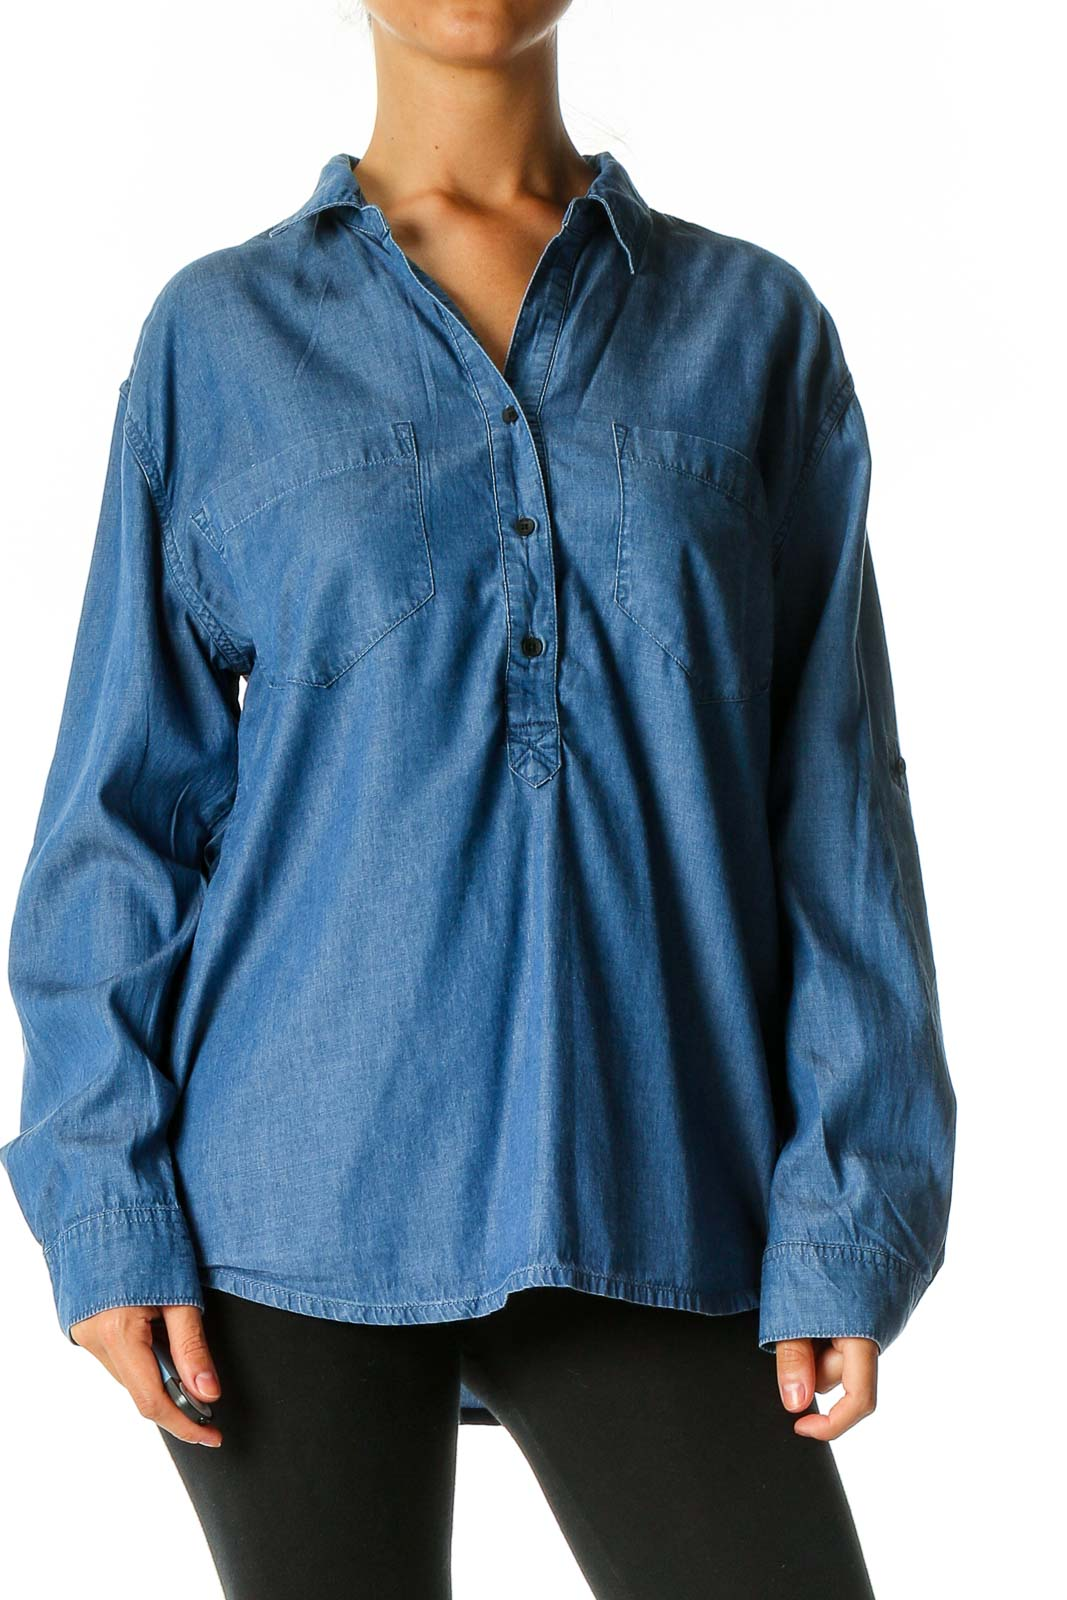 Blue Solid Casual Shirt Front